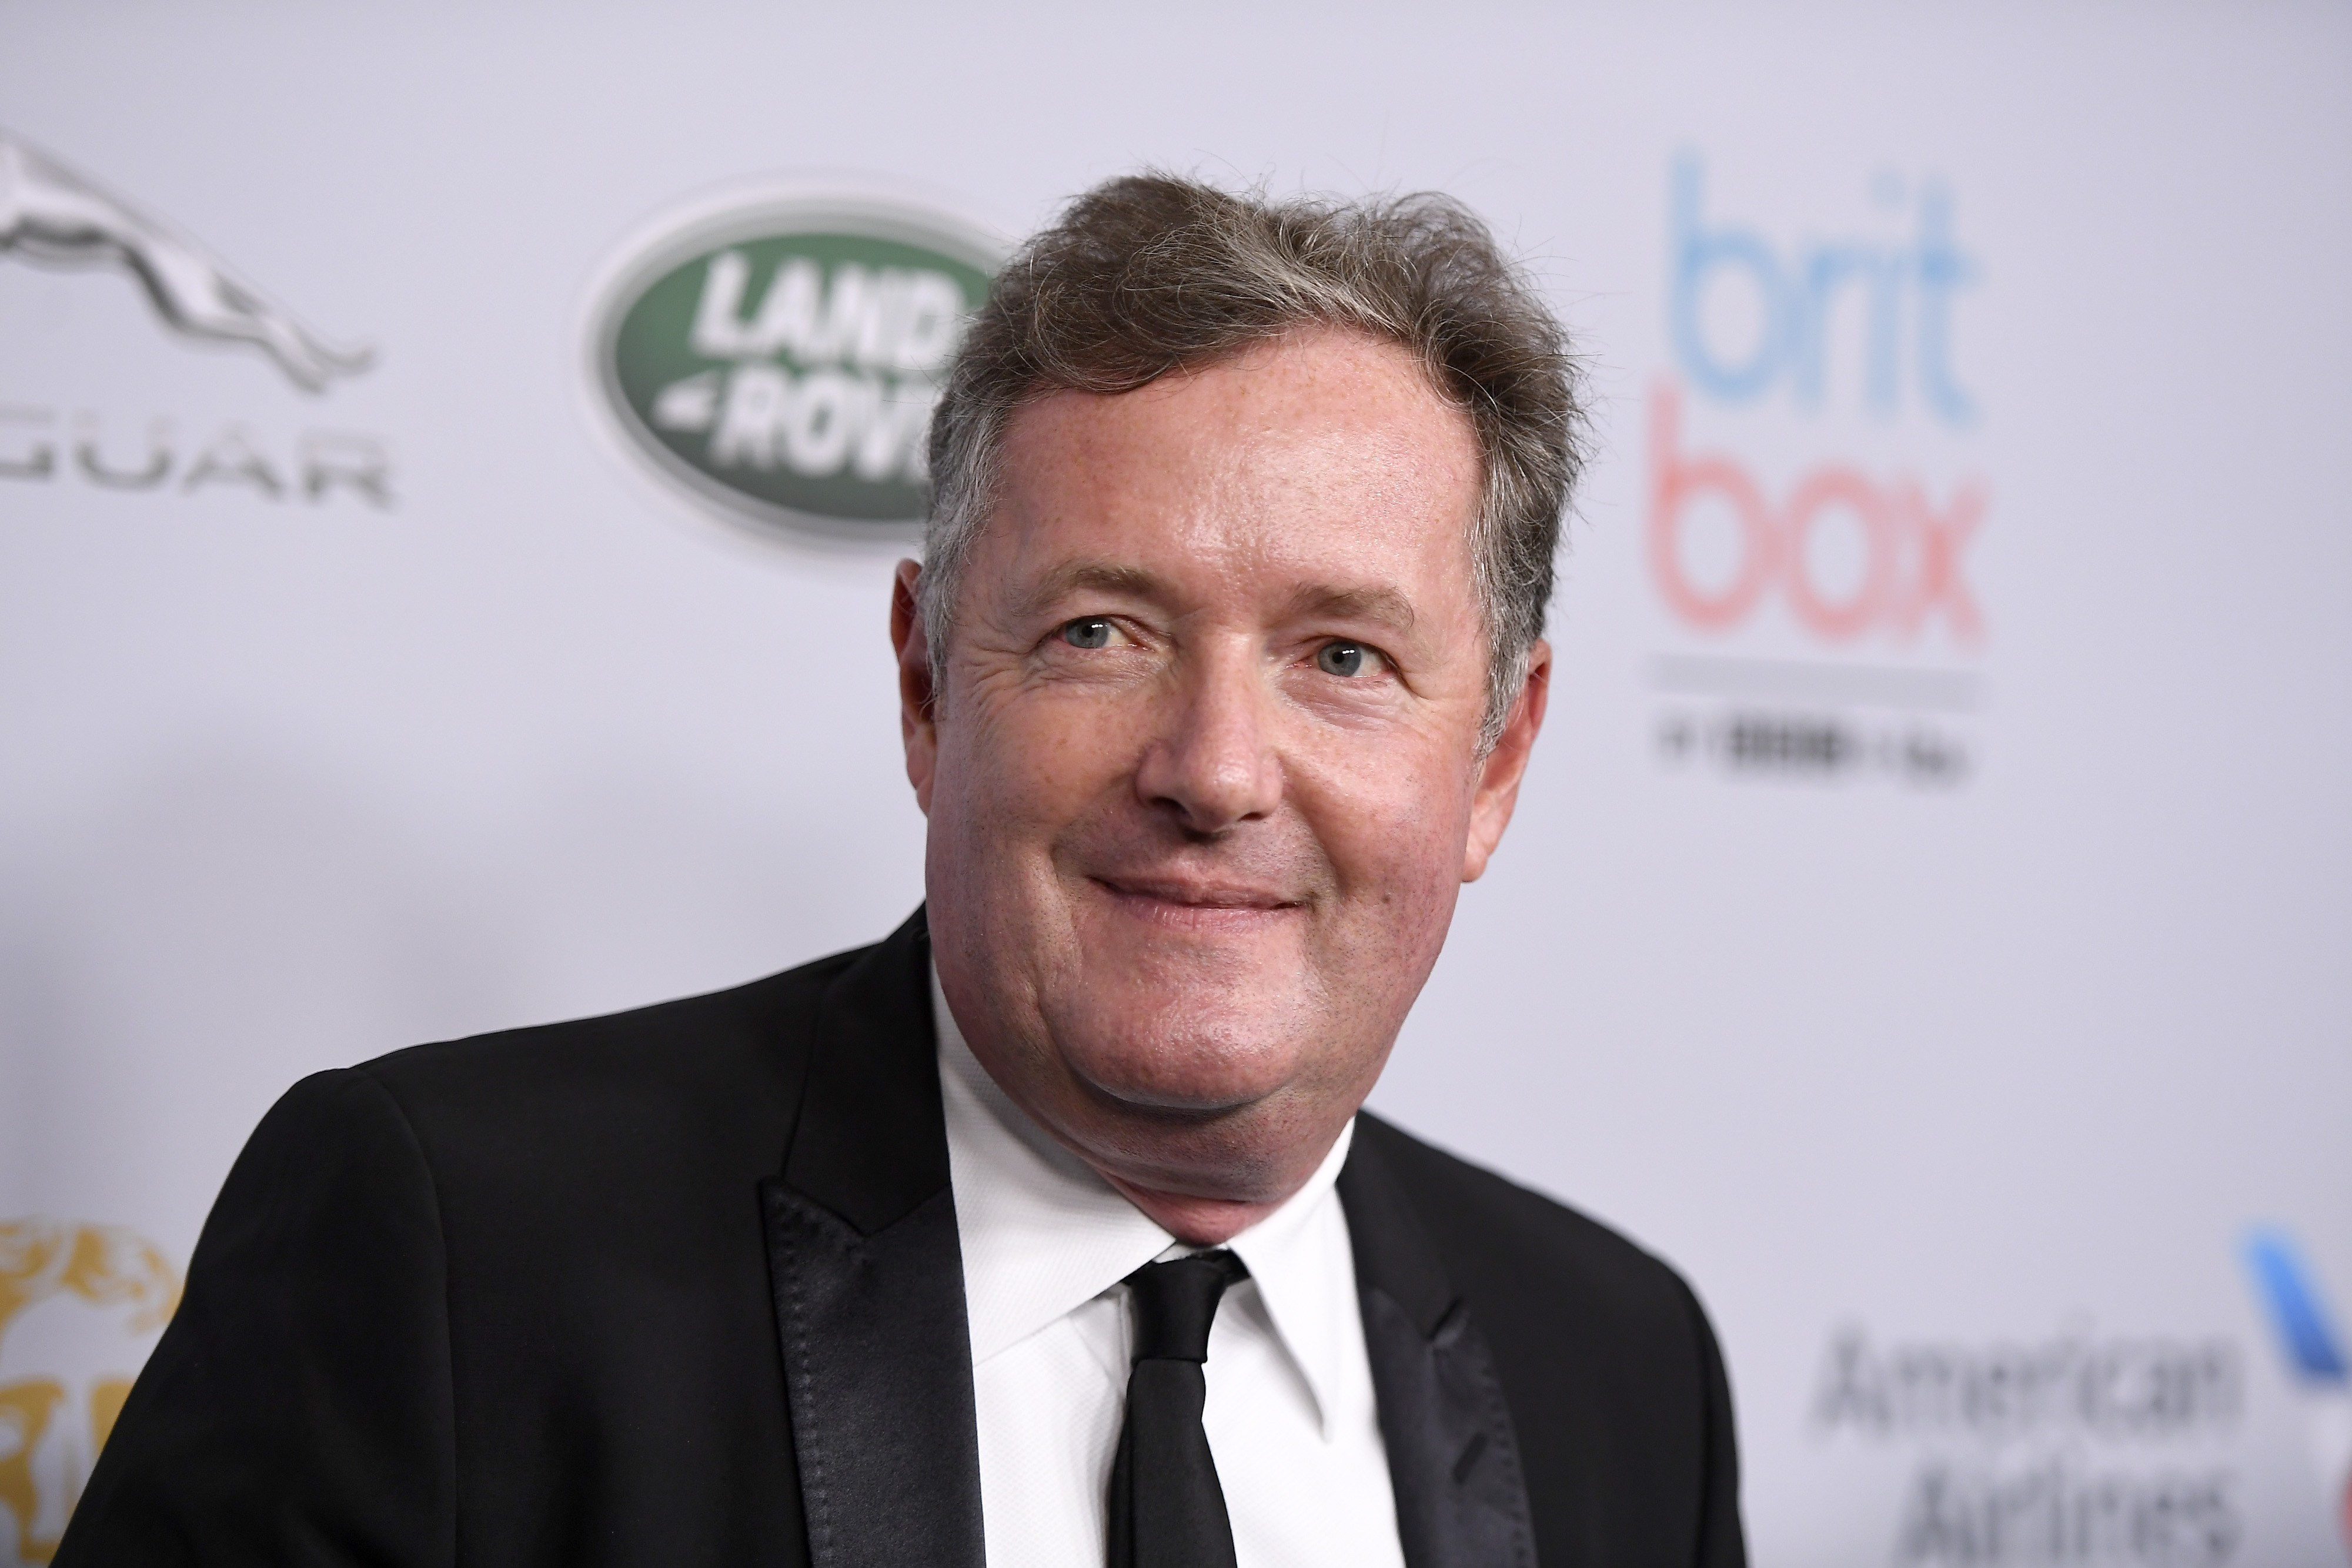 Piers Morgan tipped for knighthood and even PM role after coronavirus comments